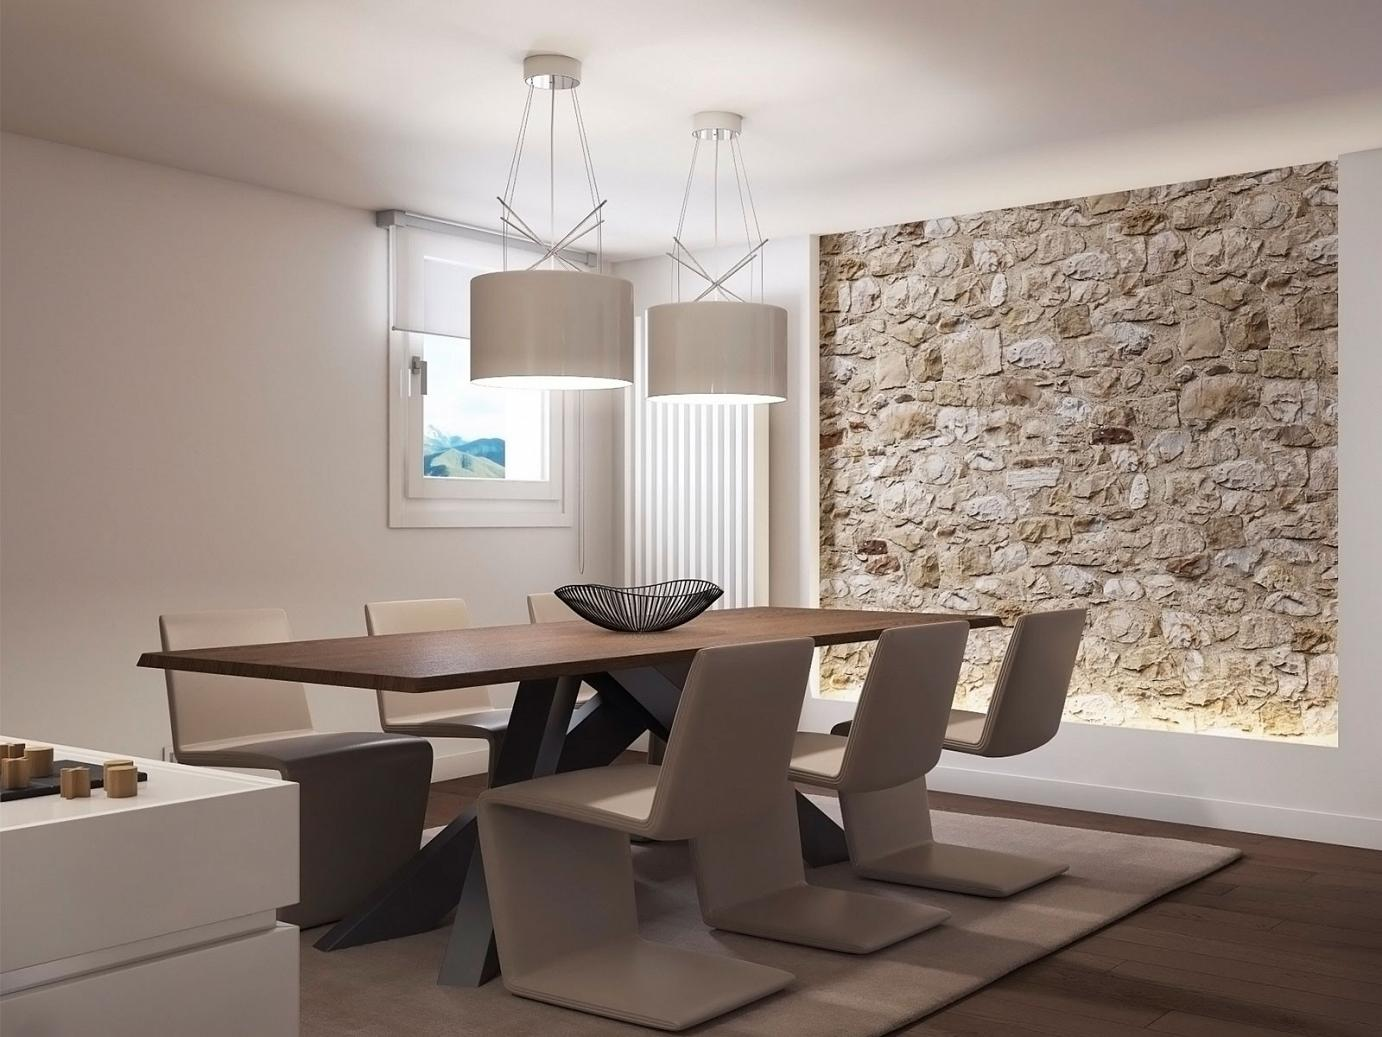 Bocchio Solutions - We work for create real design projects, who win the passage of time and are the perfect realisation of your dreams